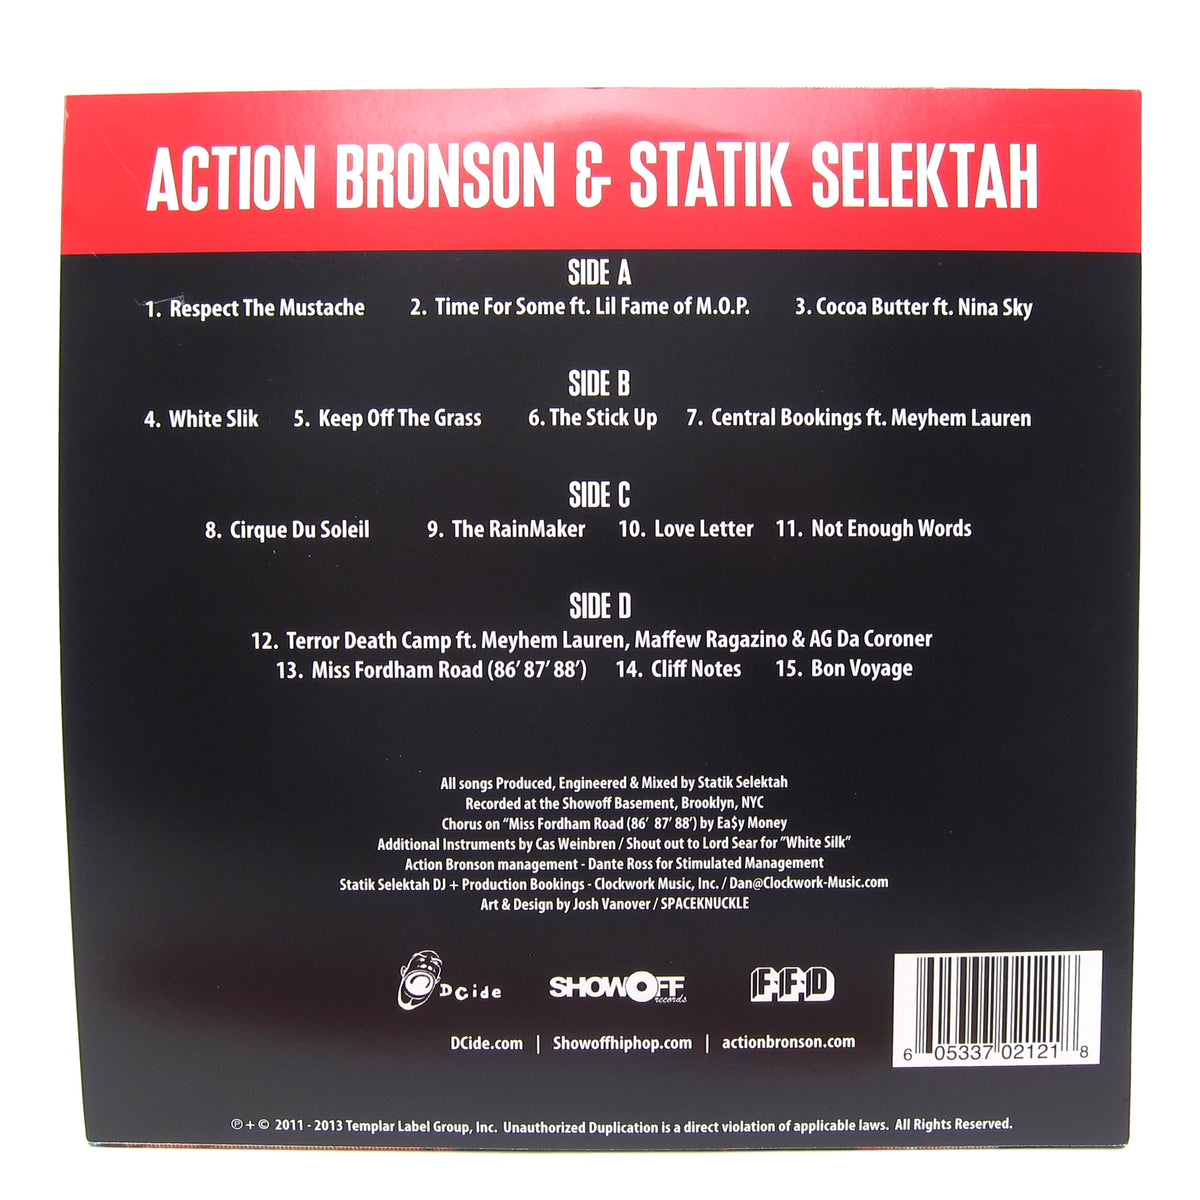 Action Bronson & Statik Selektah: Well Done (Colored Vinyl) Vinyl 2LP